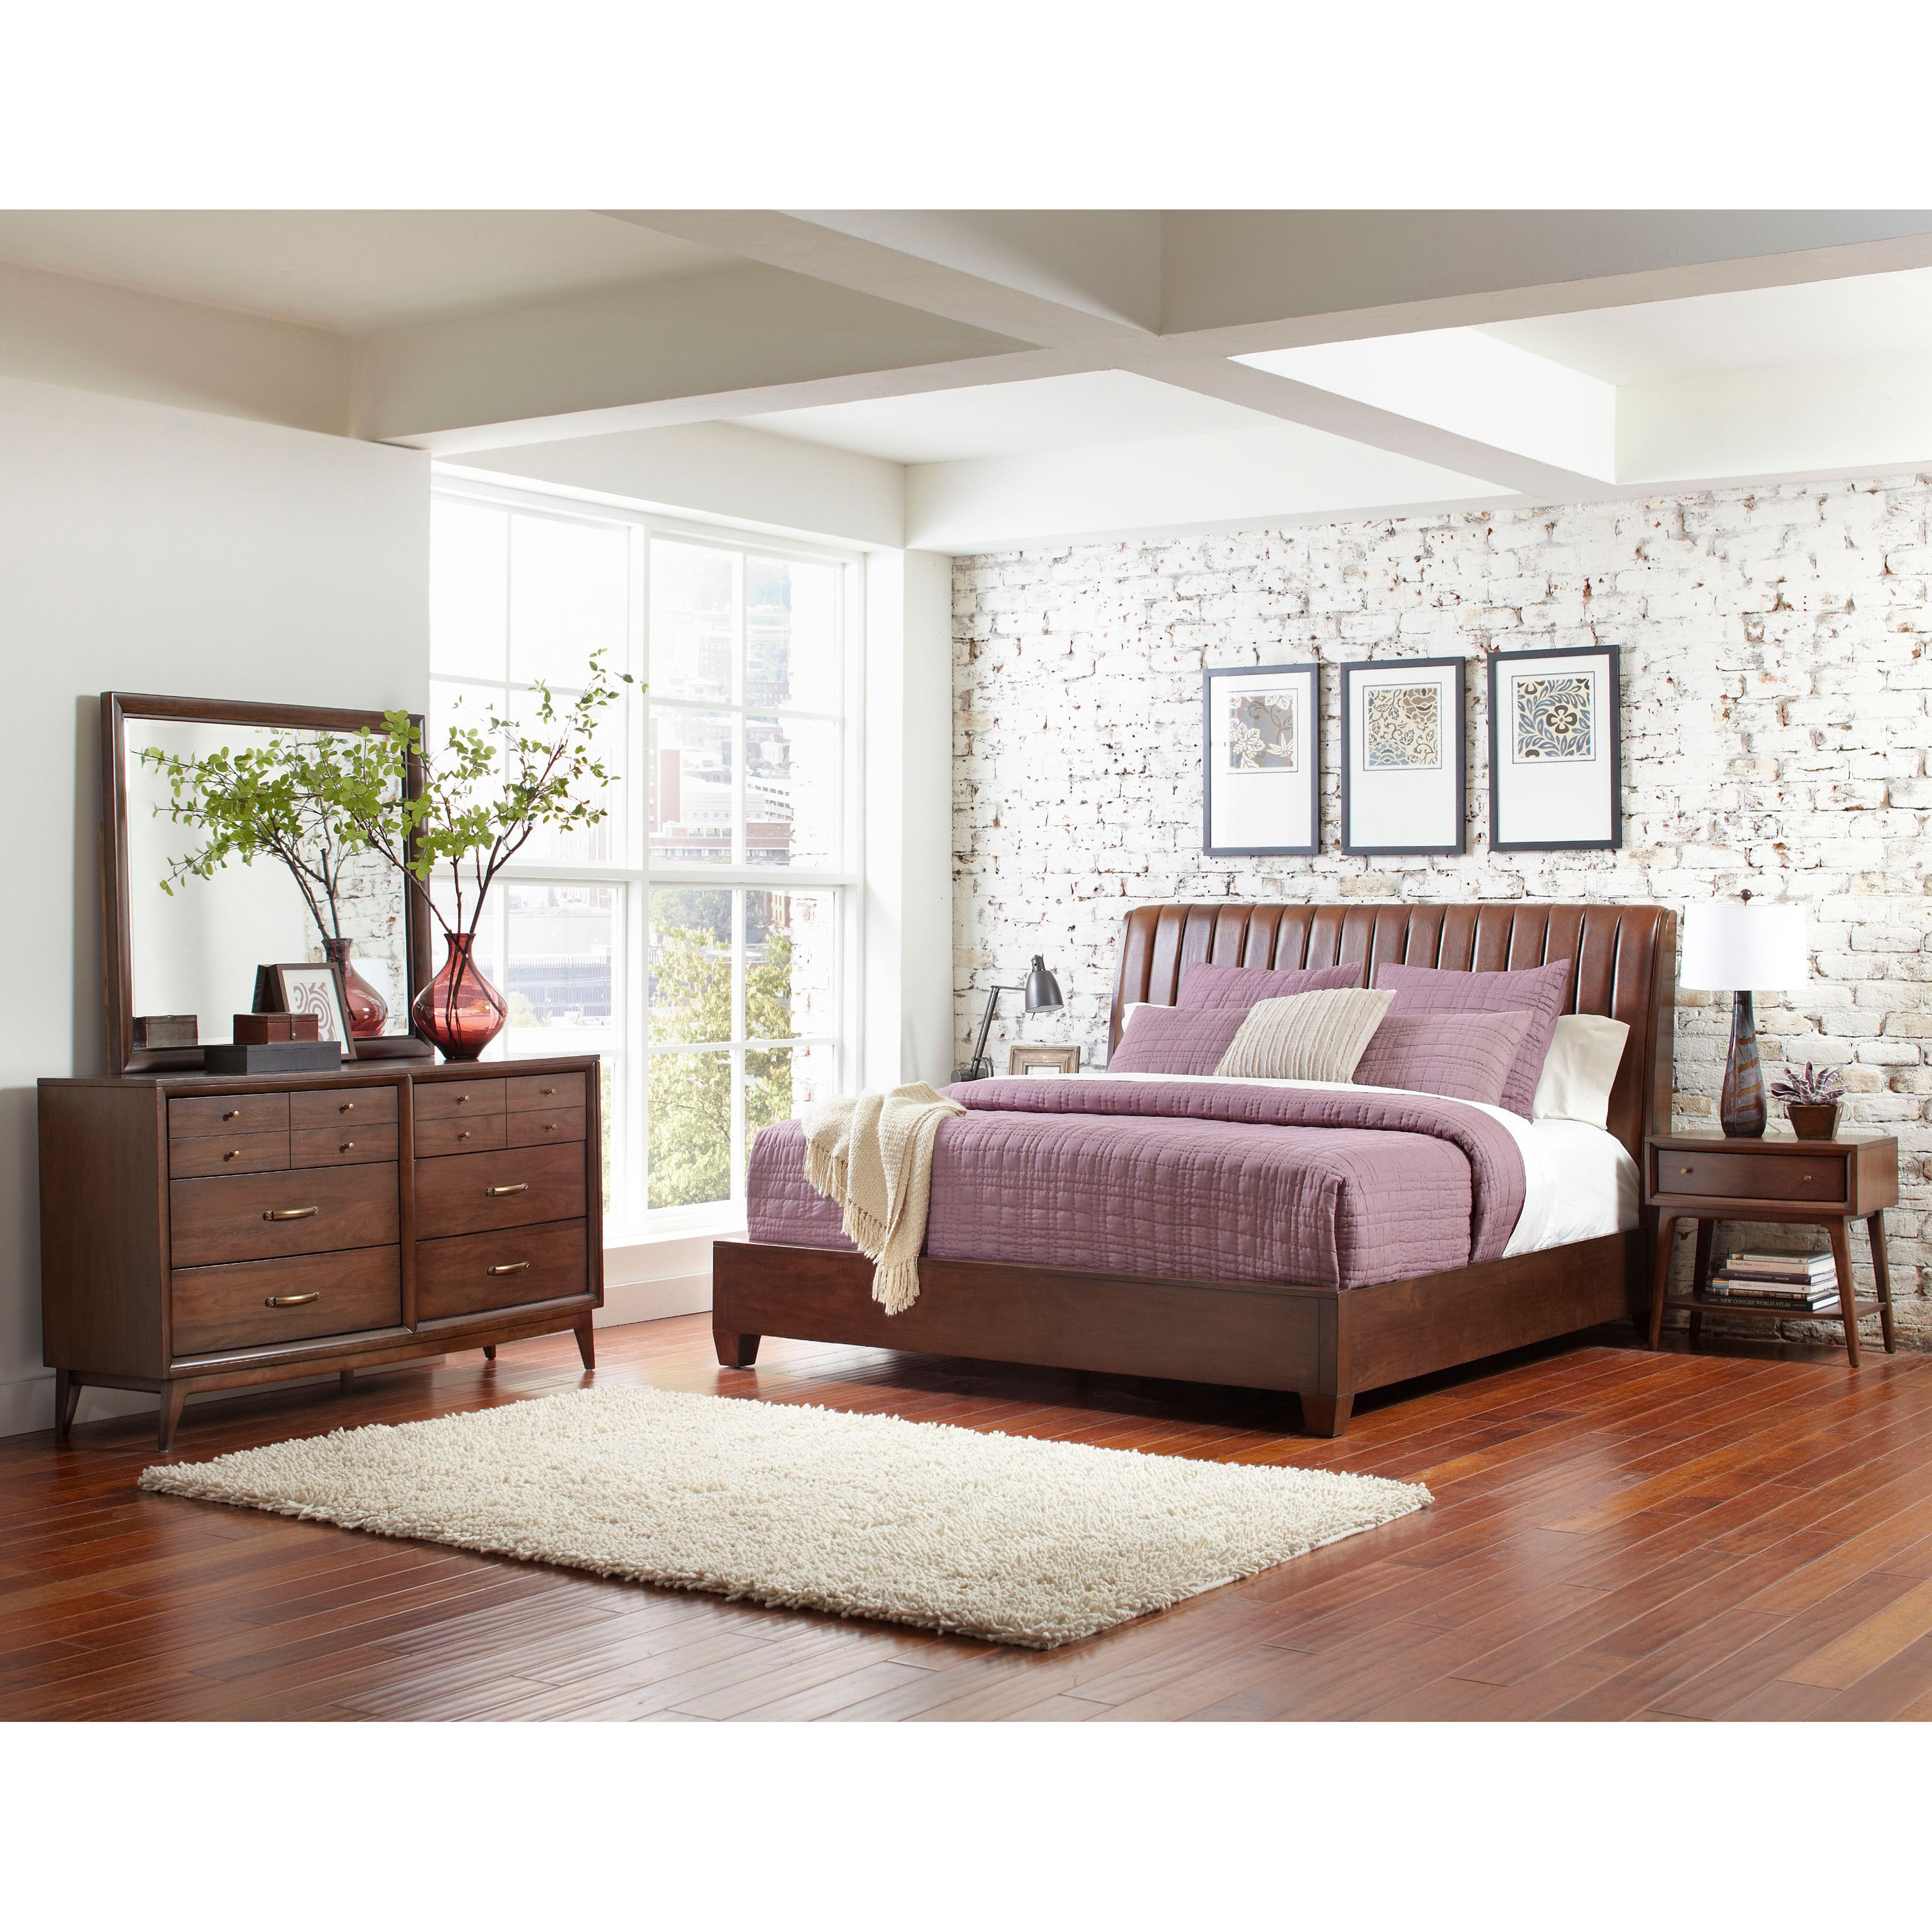 Ryder Queen size Leather Sleigh Bed  Bedroom Set   Brown. Used queen sleigh beds   Beds   Bed Frames   Compare Prices at Nextag